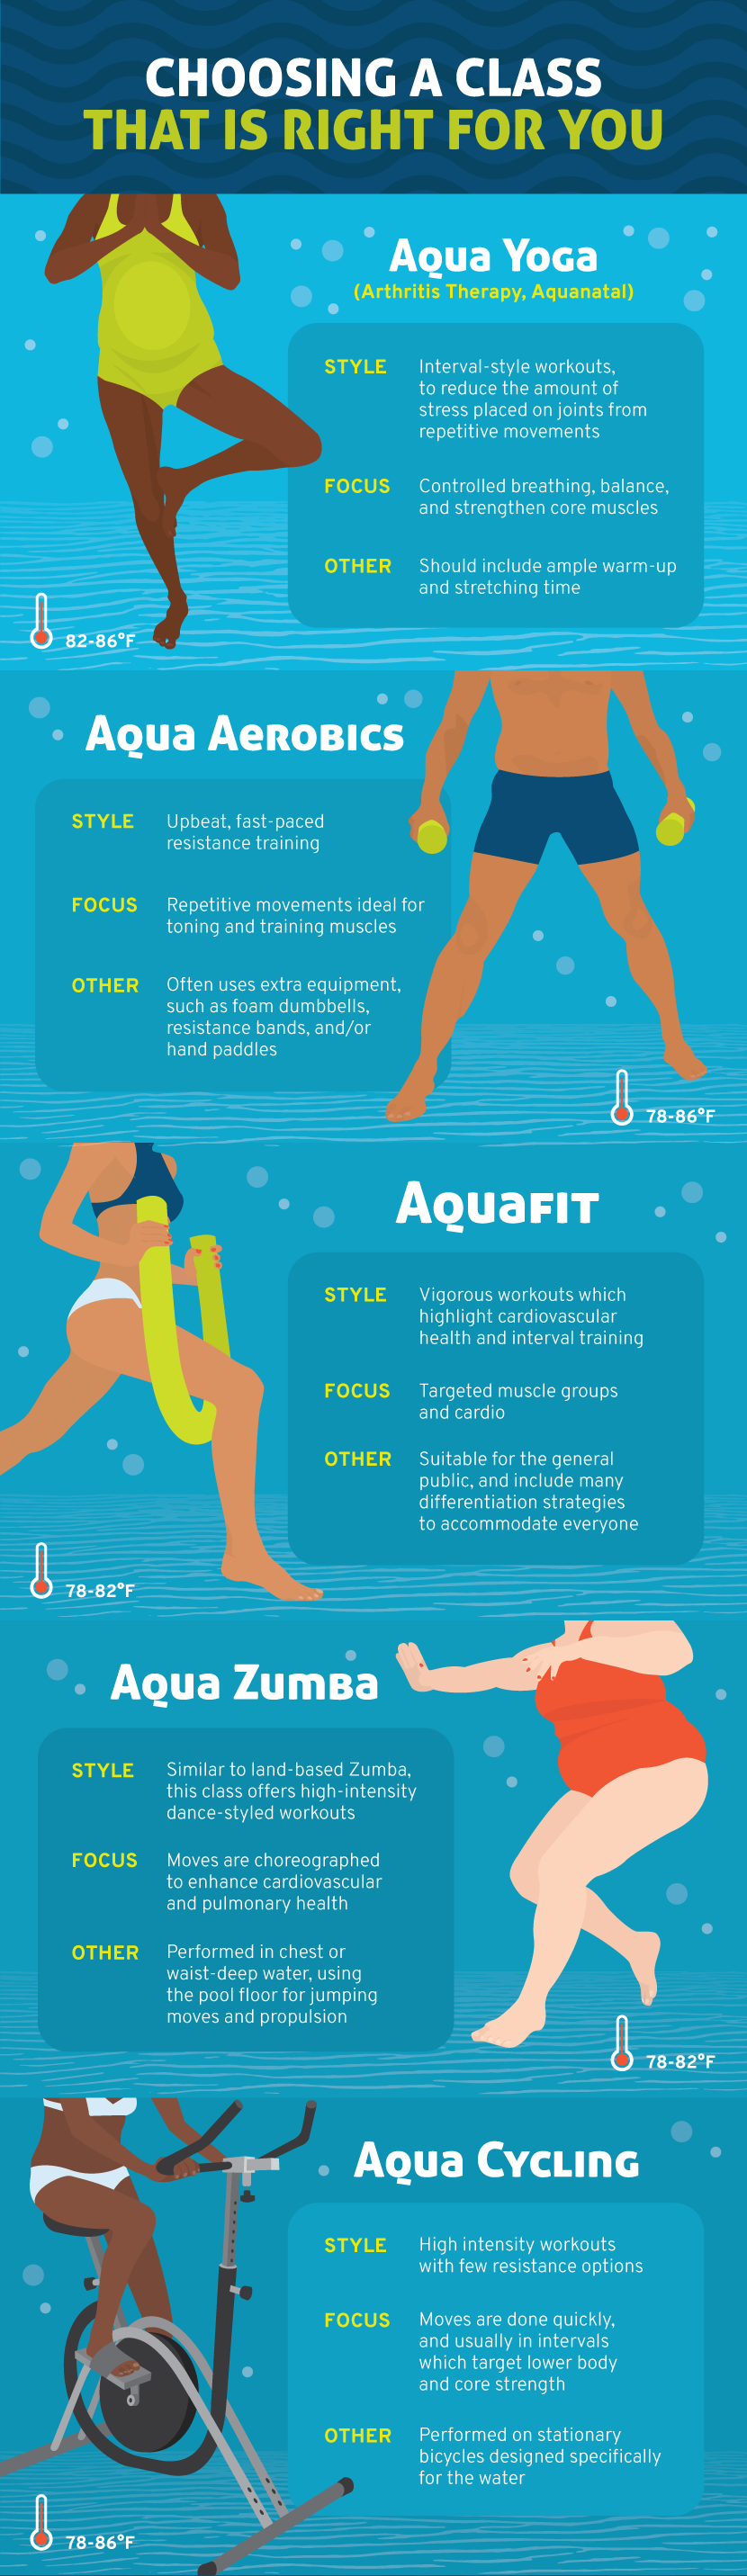 Choosing a Class That's Right For You - From Exercise to Aquasize